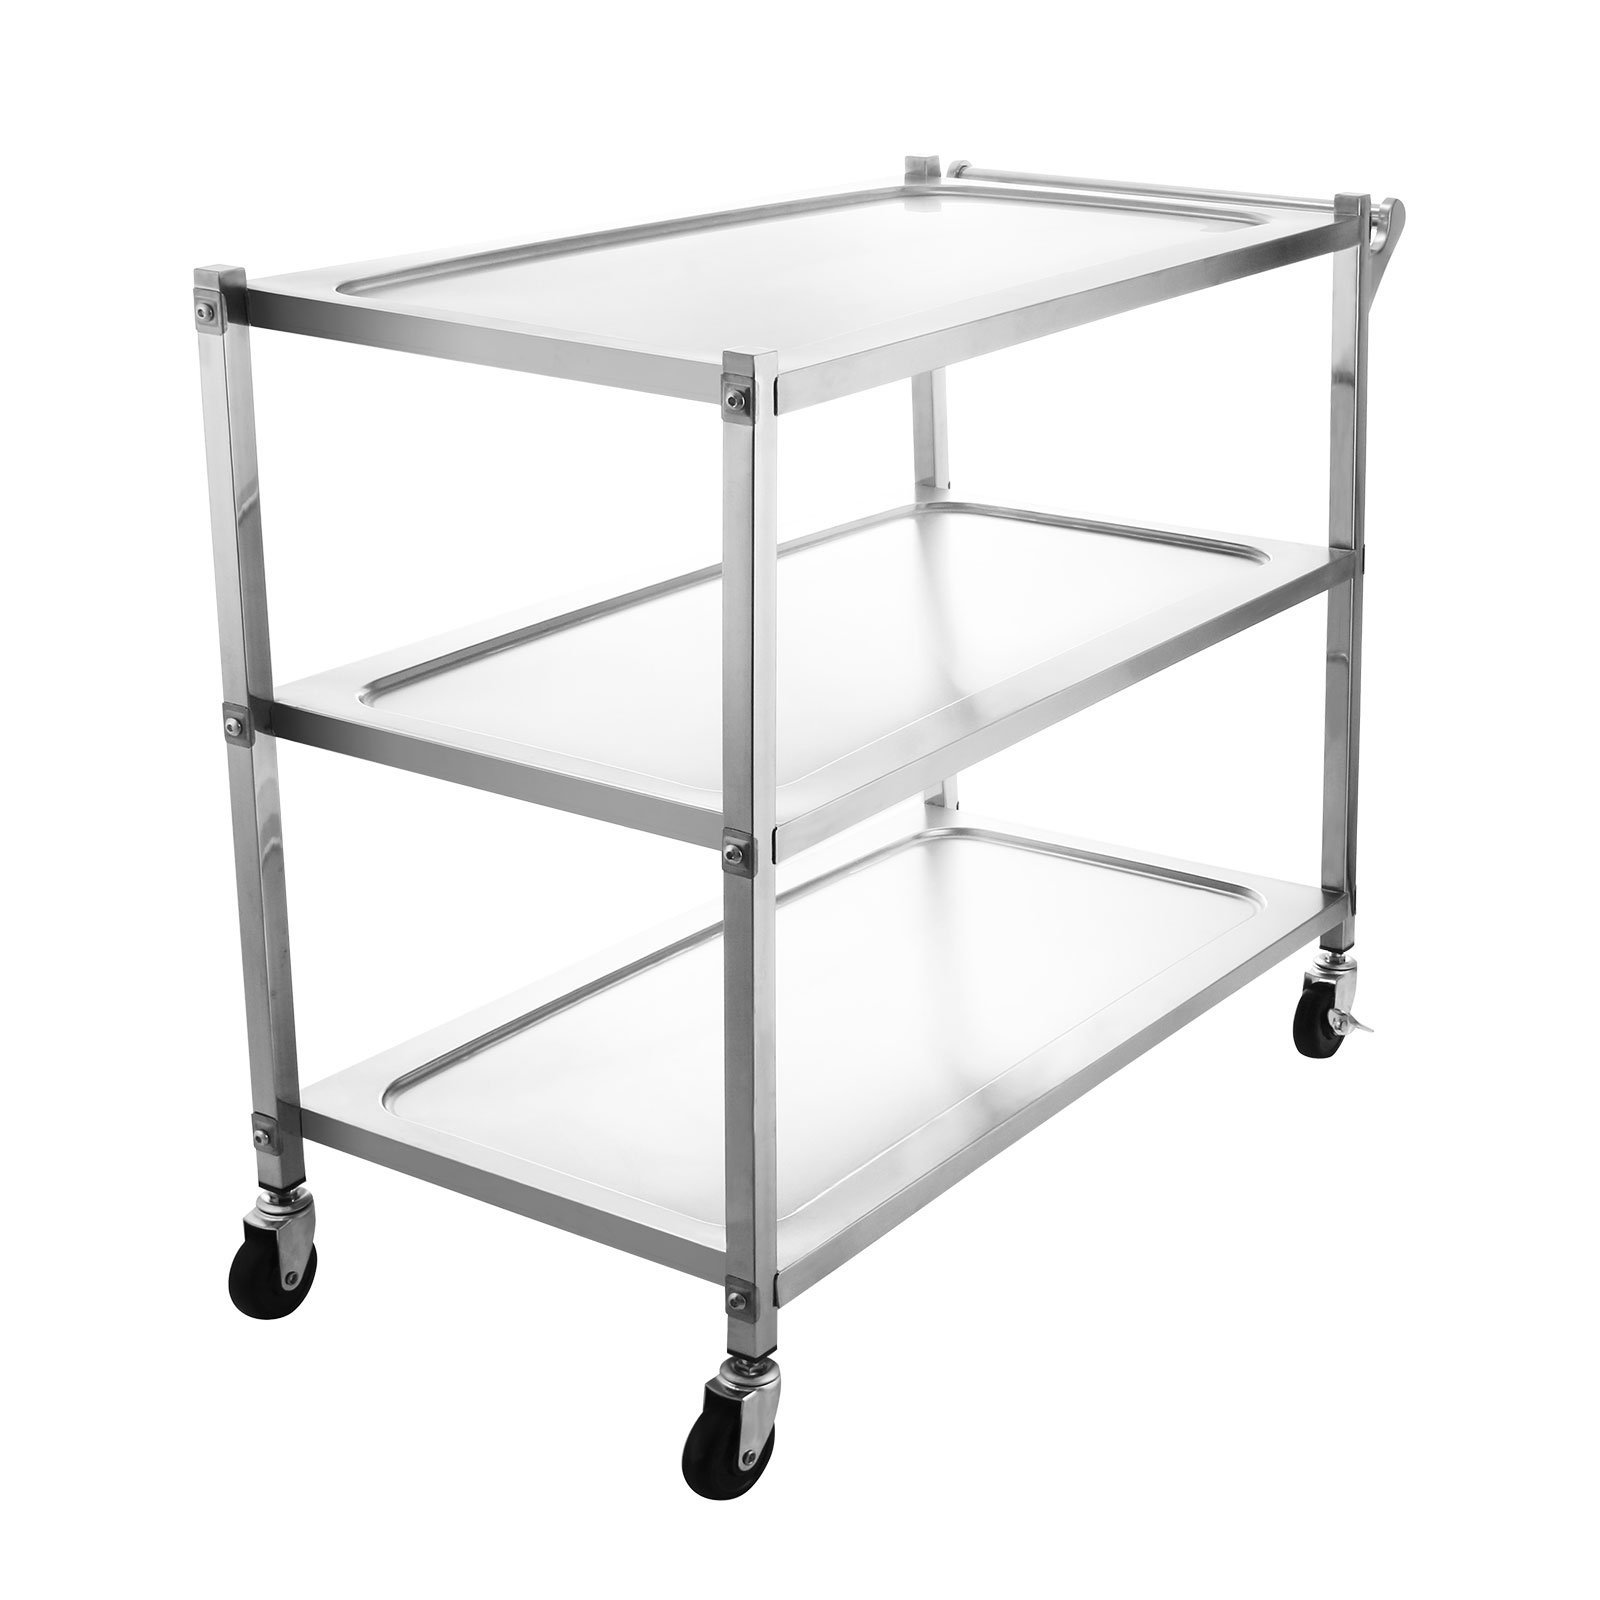 OrangeA Utility Cart 3 Shelf Utility Cart on Wheels 330Lbs Stainless Steel Cart Commercial Bus Cart Kitchen Food Catering Rolling Dolly (3 Shelf with Handle)